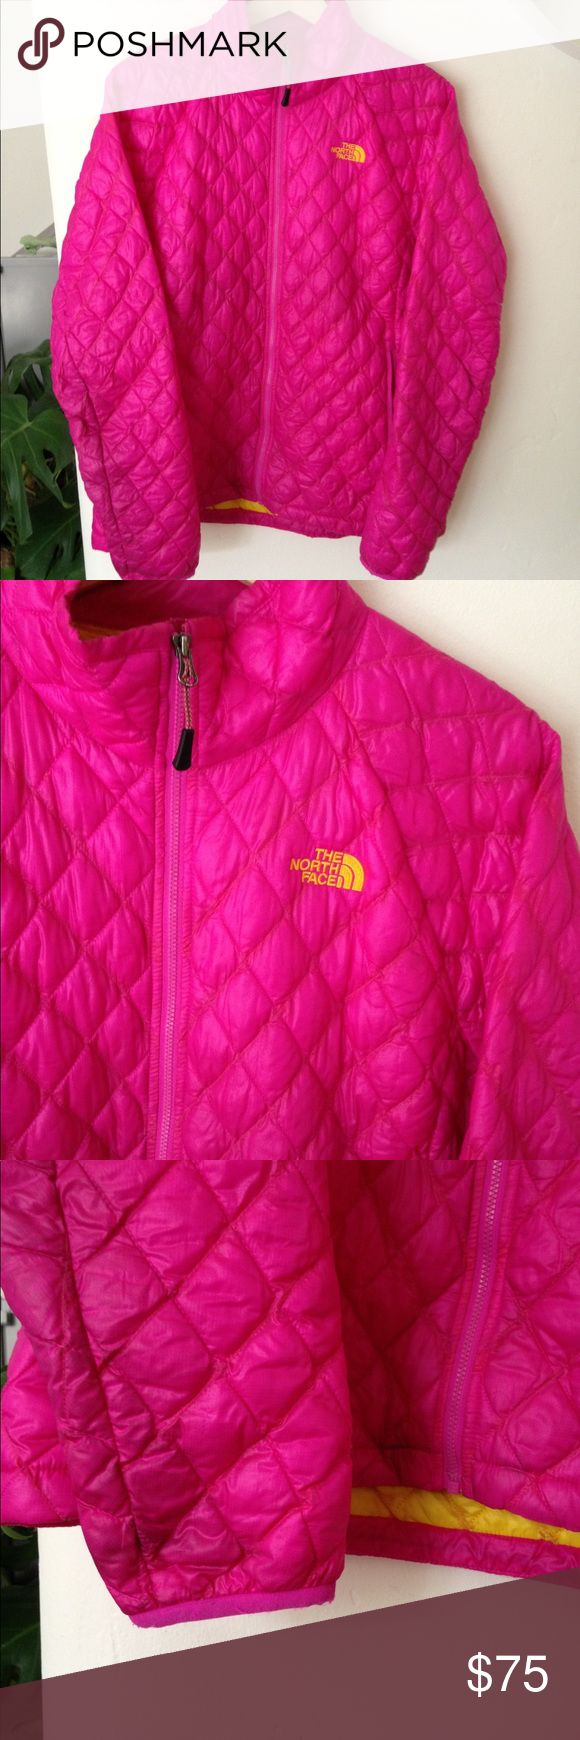 North Face Thermoball Jacket Full Zip This jacket is so warm and comfortable. Very versatile and in good condition! Pink outside and yellow lining. Full price is $199 so this is a great deal for a great jacket. Only minor signs of wear and tear as shown on the sleeve picture but no rips. The North Face Jackets & Coats Puffers